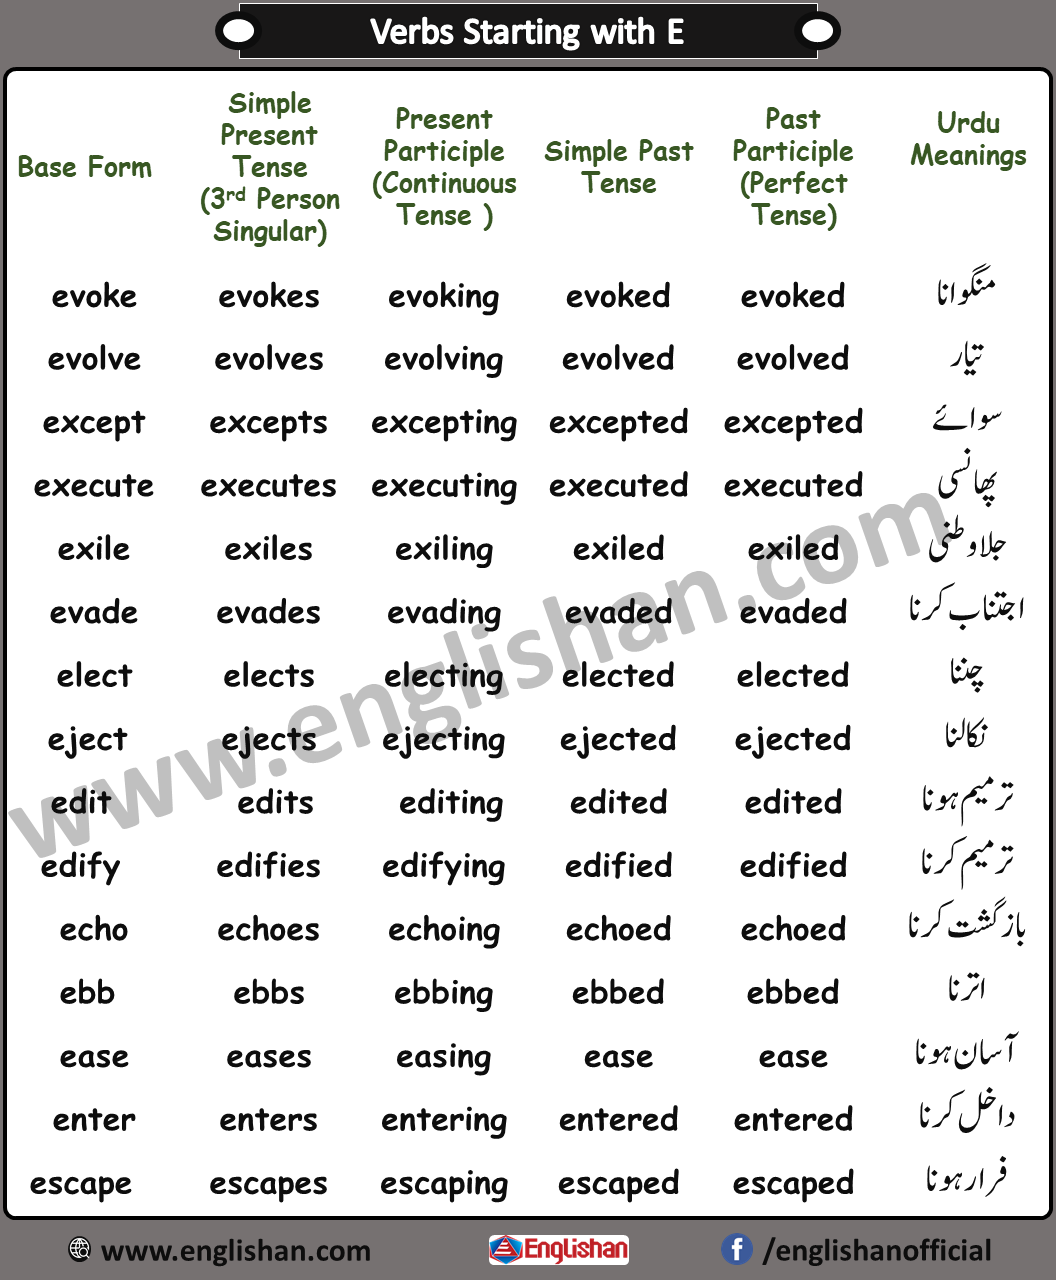 Words Starting With E - English Vocabulary Word List